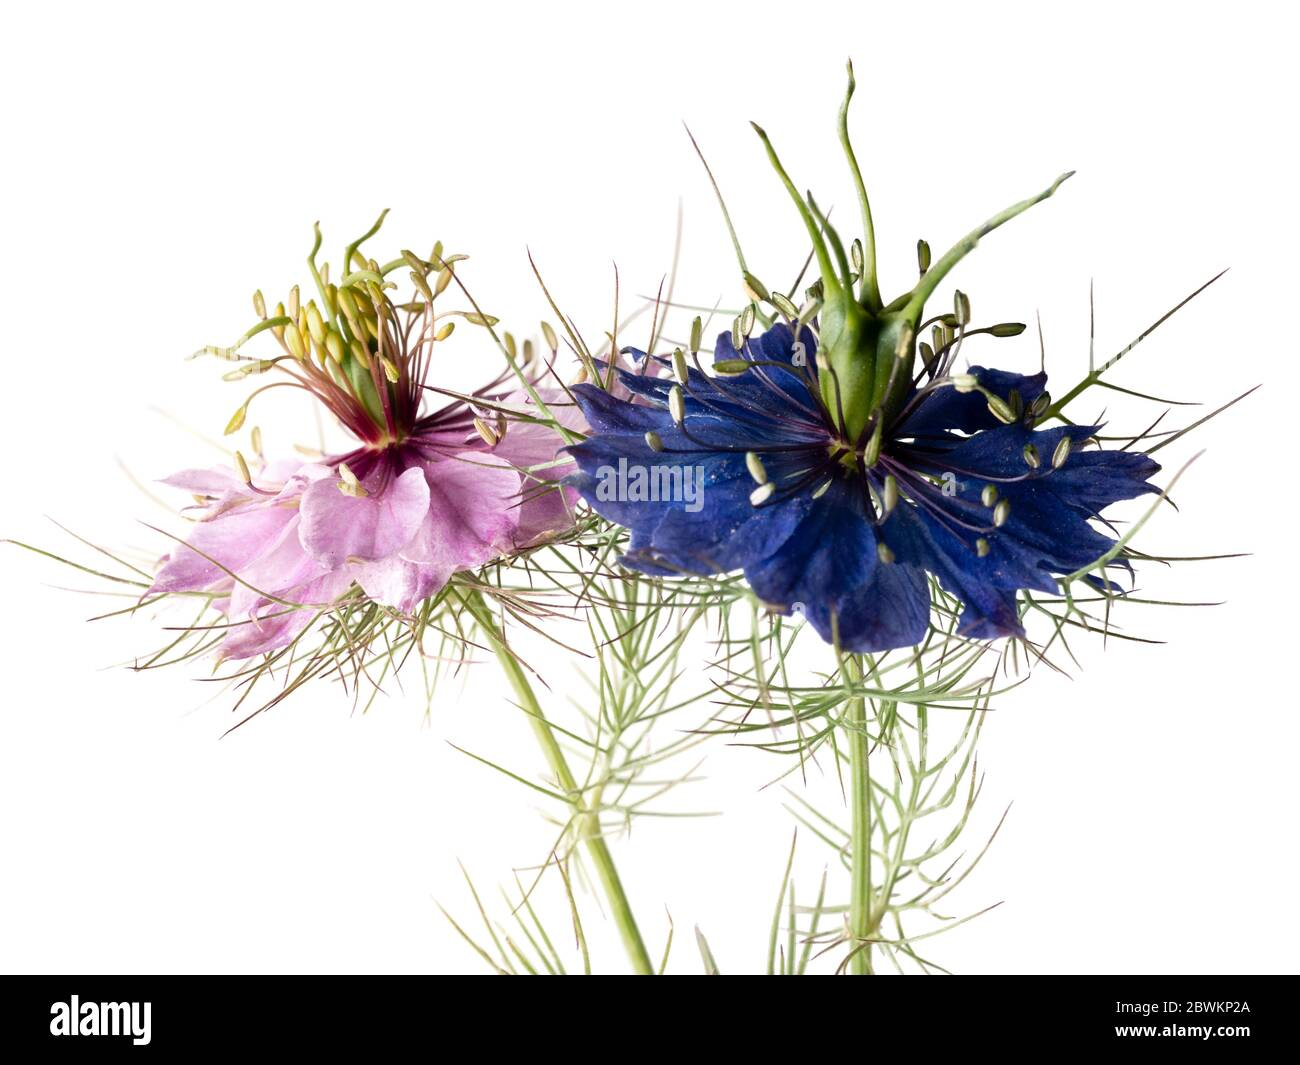 Mixed pink and blue group of the hardy annual Love in the Mist, Nigella damascena, on a white background Stock Photo